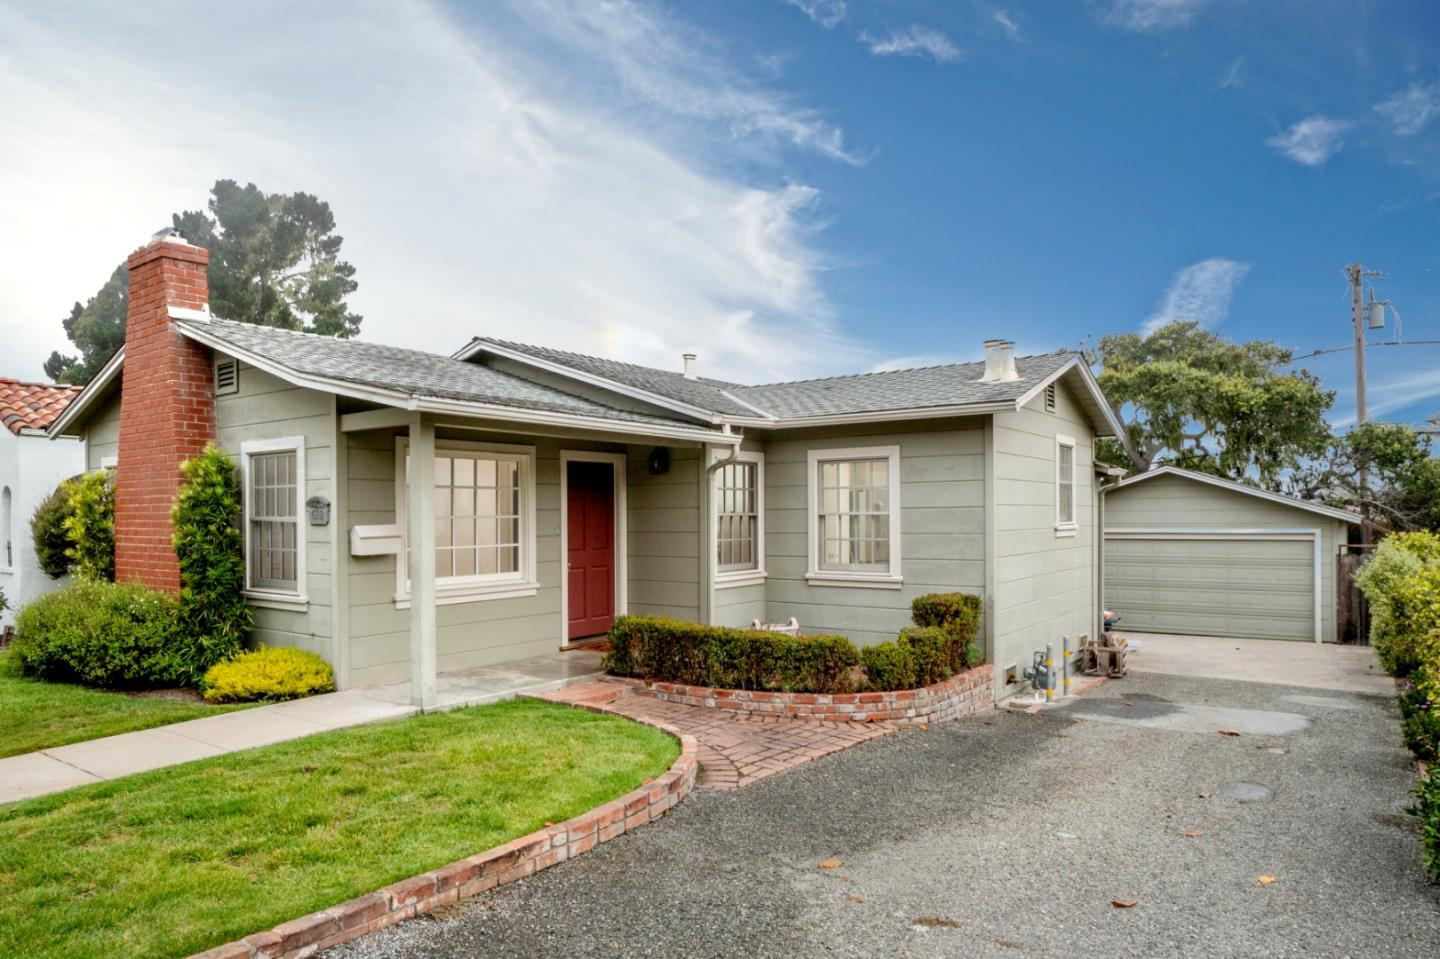 Detail Gallery Image 1 of 22 For 632 Spazier Ave, Pacific Grove, CA, 93950 - 3 Beds | 2 Baths